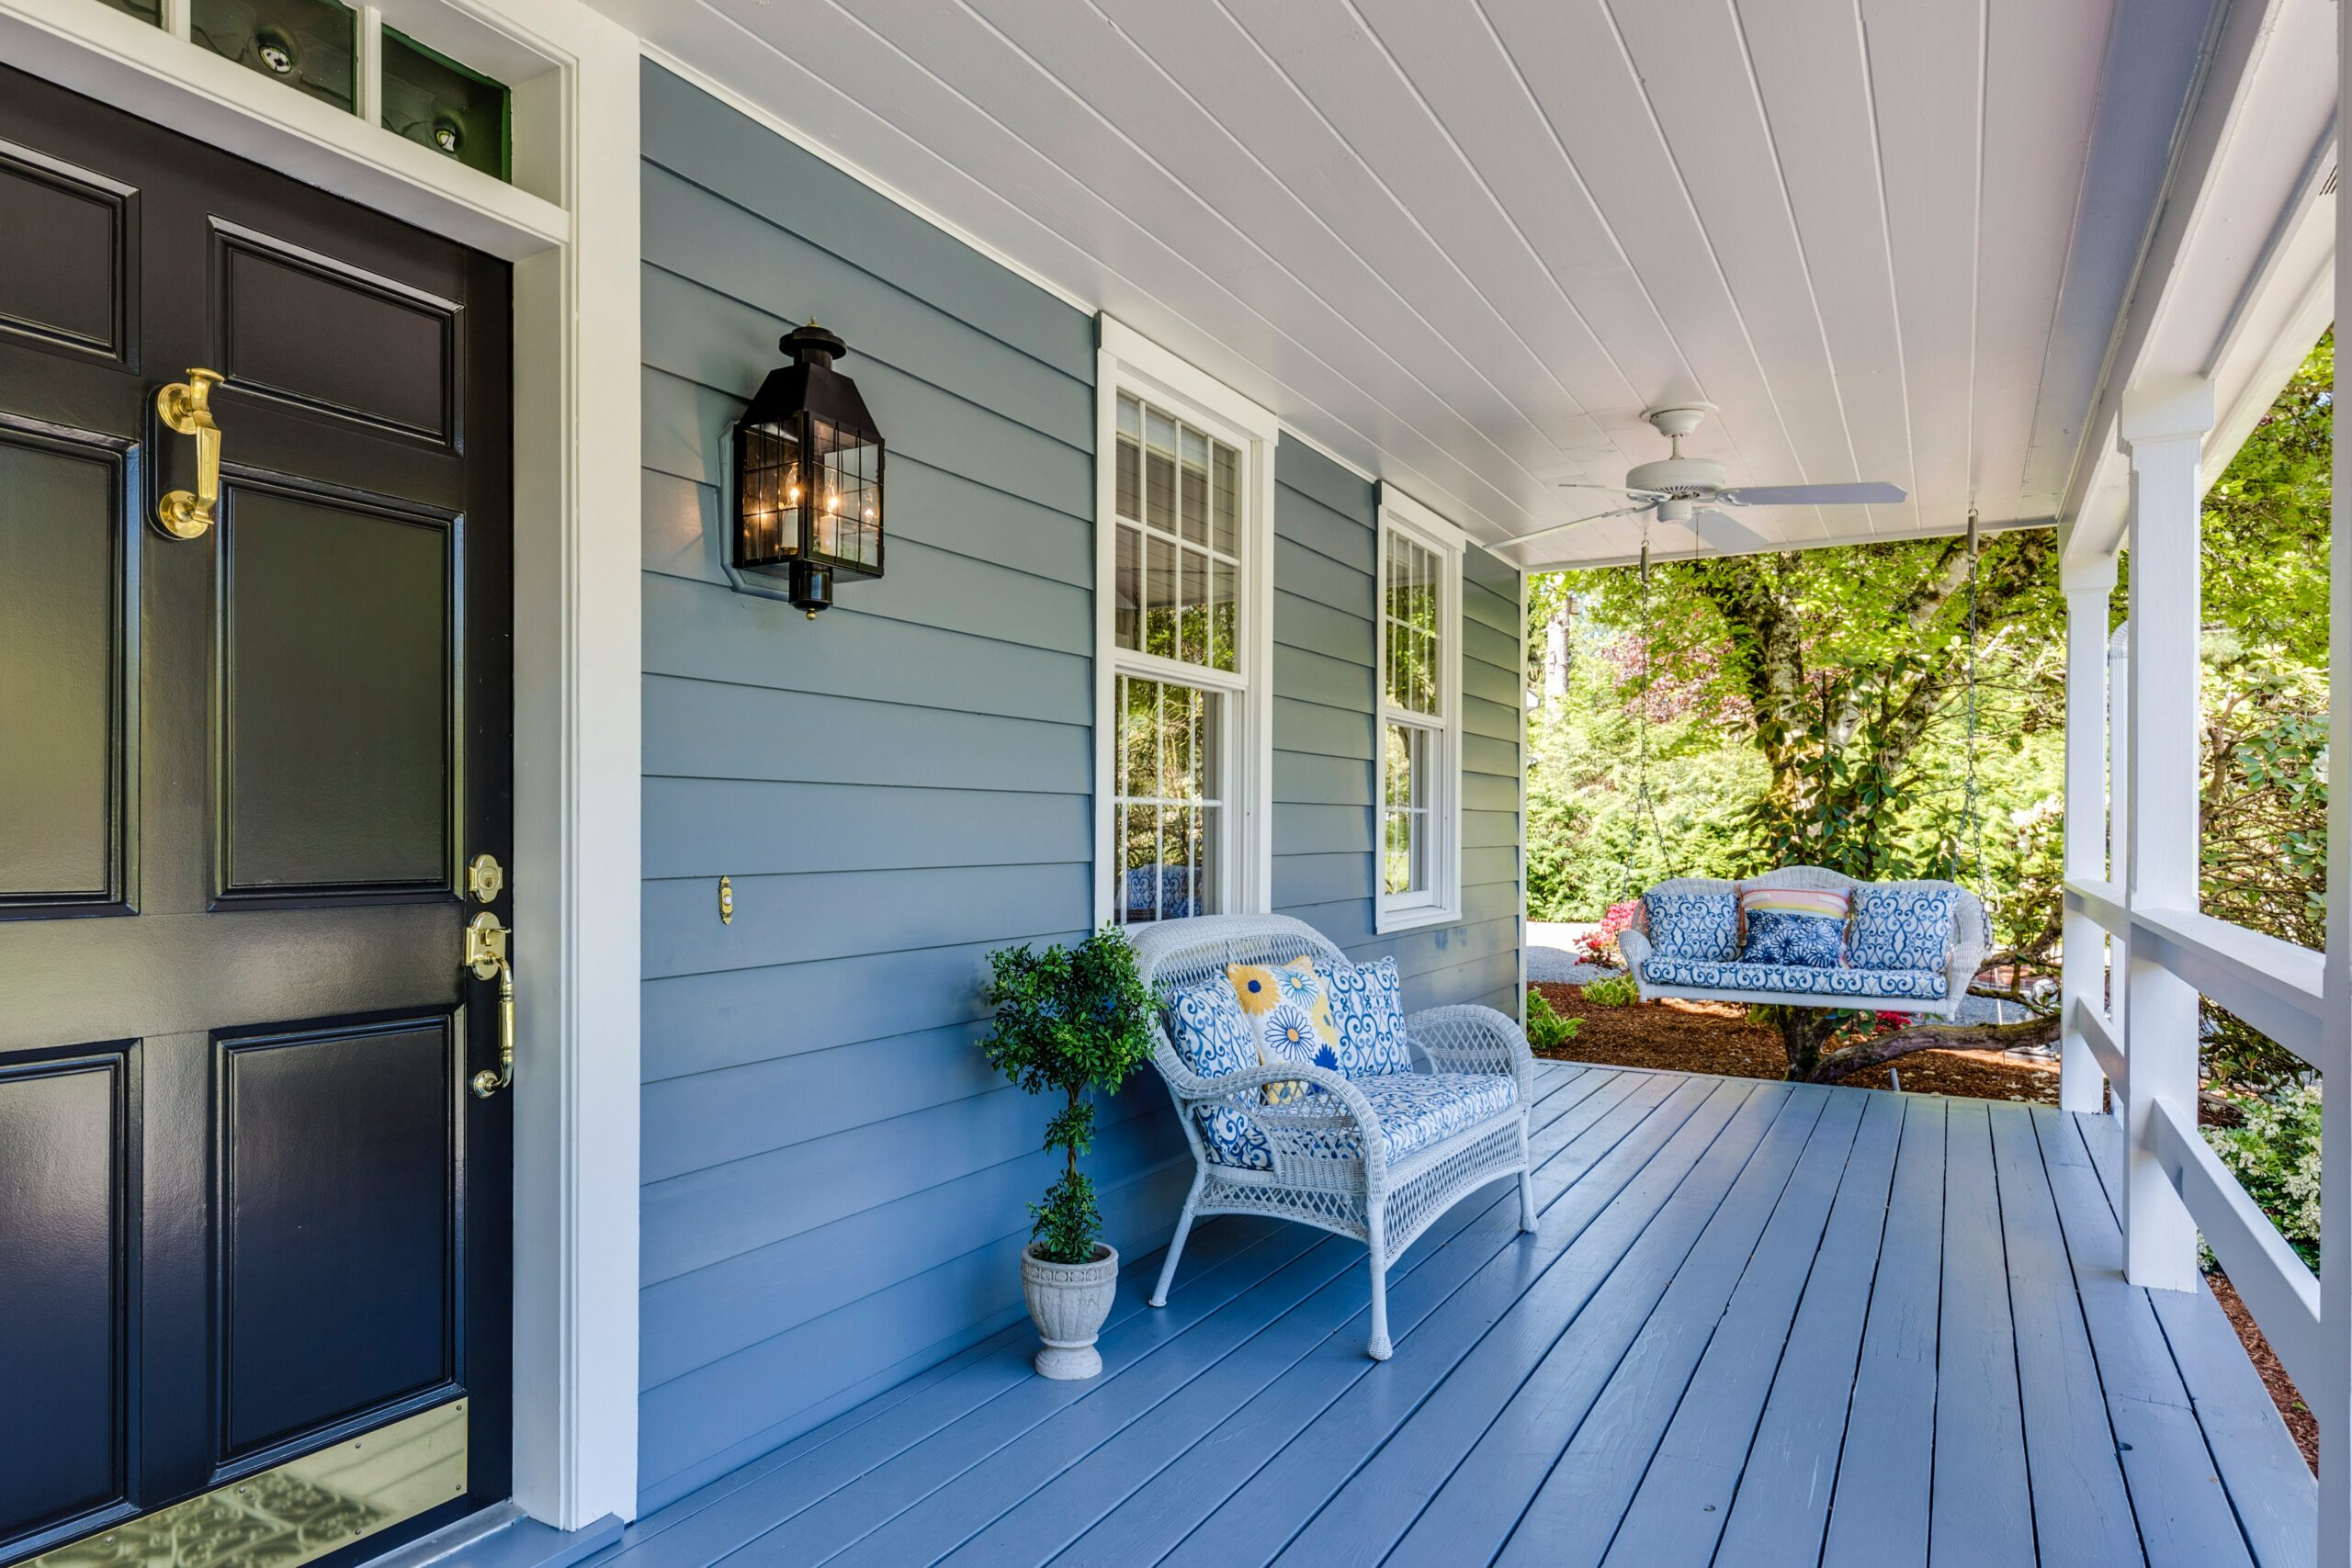 A front porch with a bench and potted plant